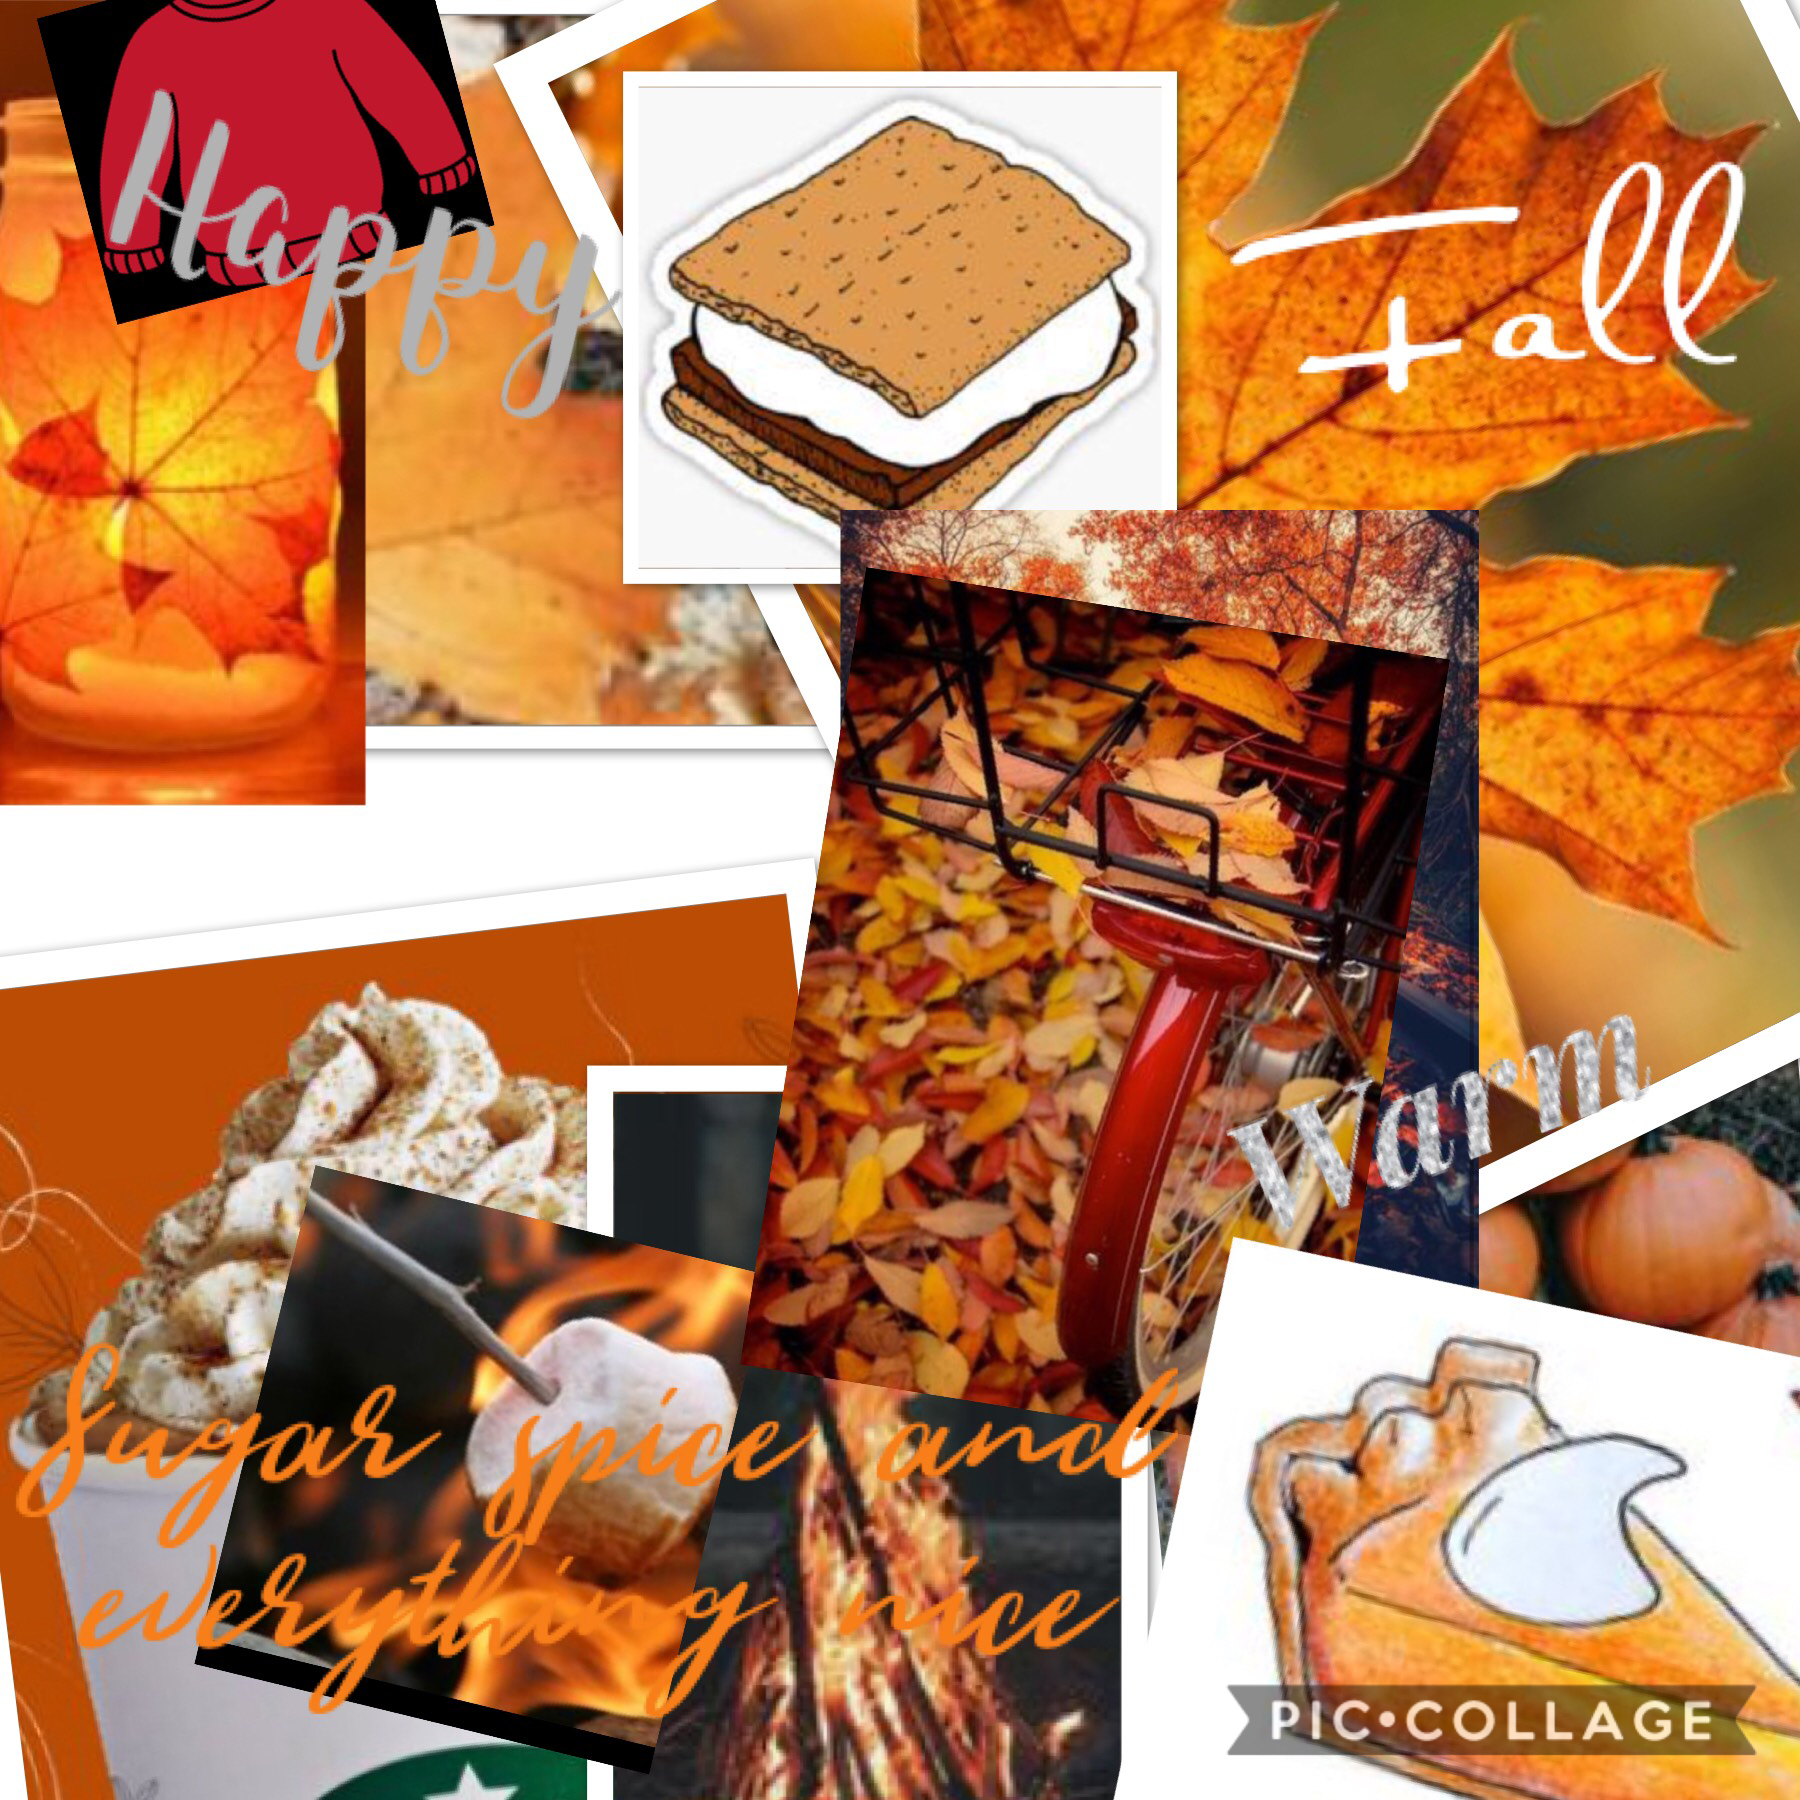 TAP!!   Fall is finally here!  Remix this collage and do whatever you feel like doing to it!  I will announce the winner at the end of October! Good luck!   Ps if you do not like this collage then you can definitely make a new one as long as it is